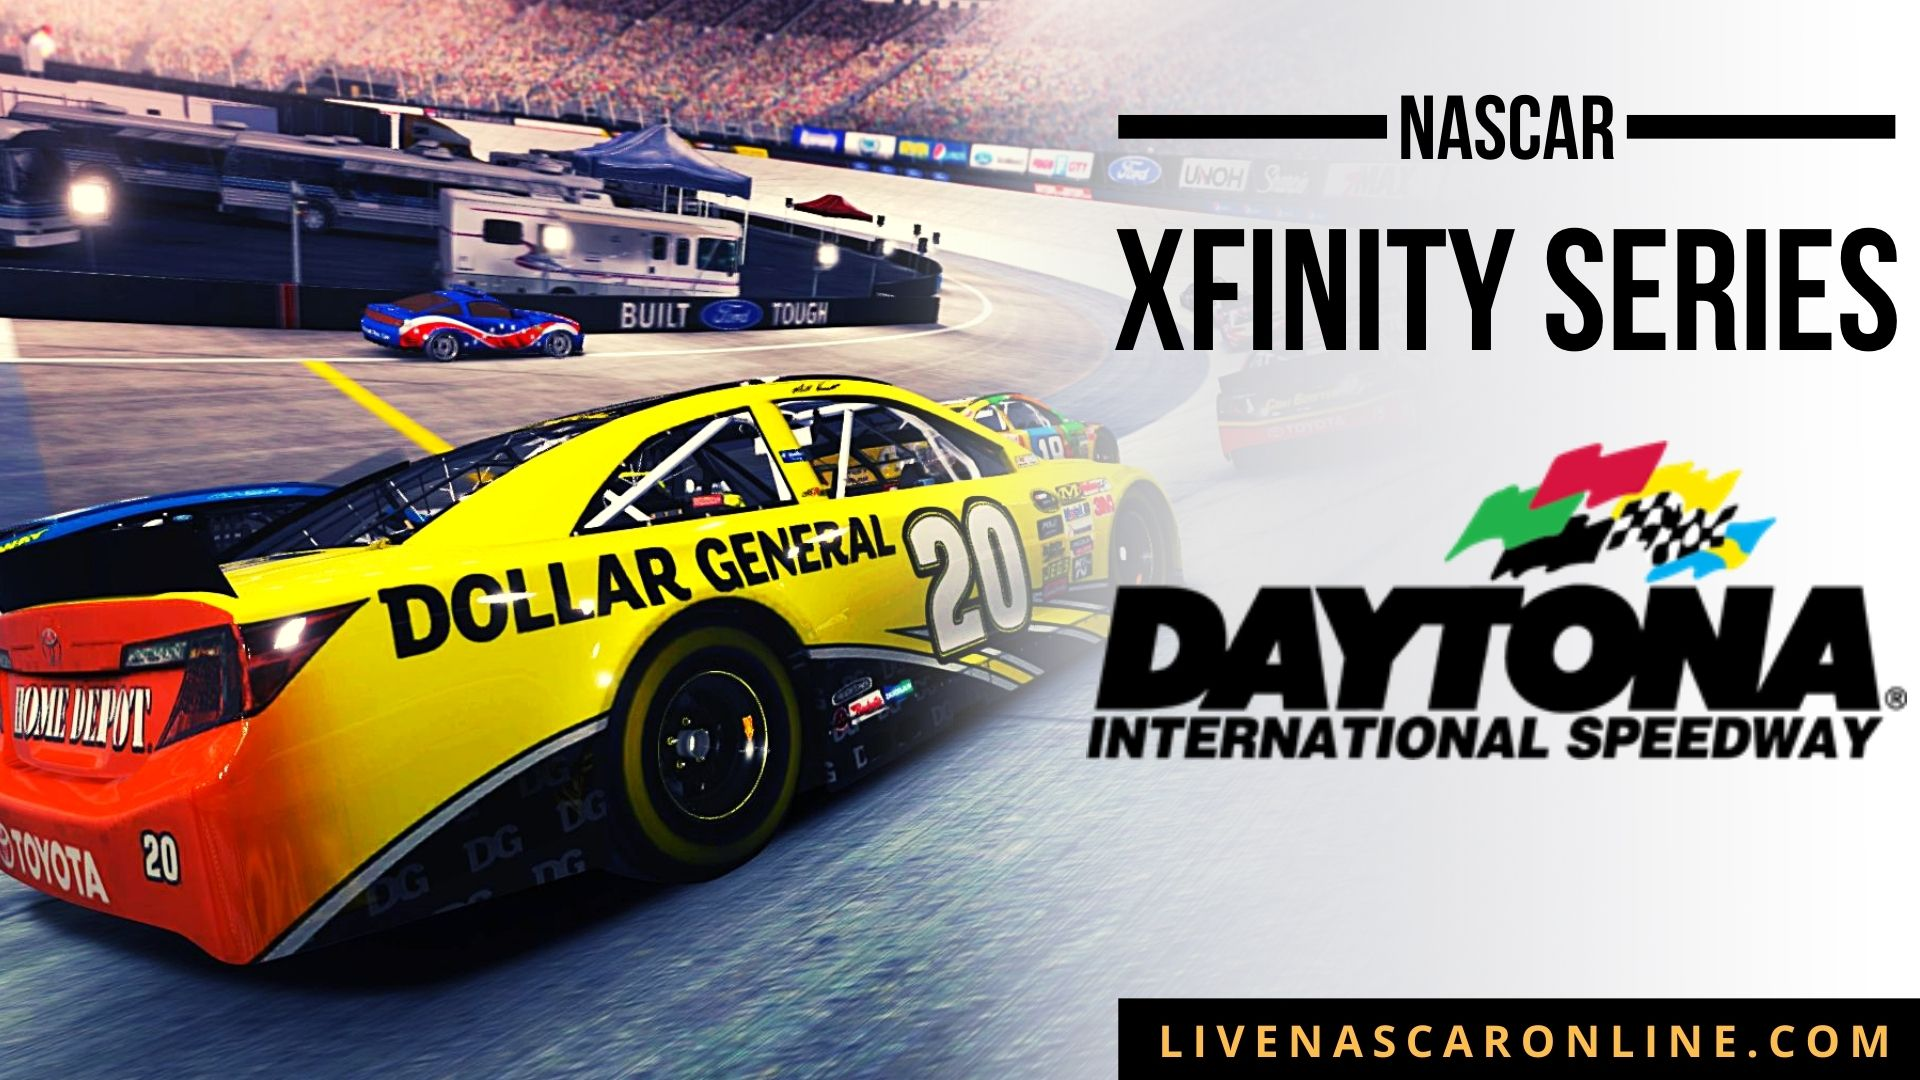 NASCAR Xfinity Race at Daytona Live Stream 2021